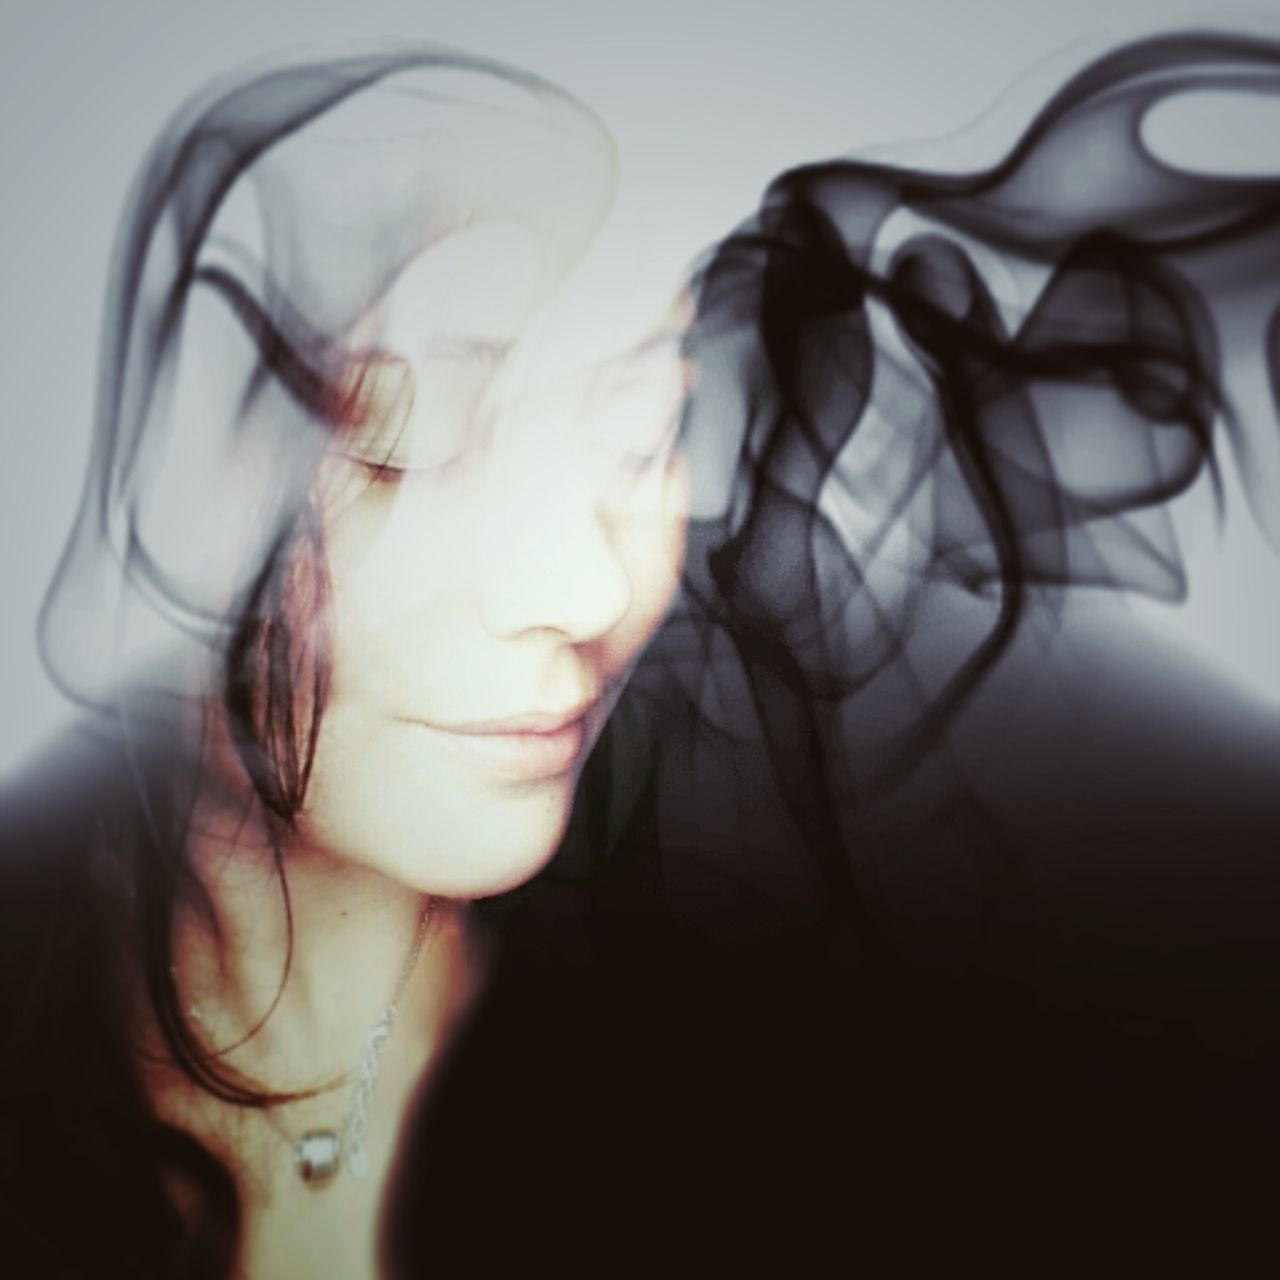 Brainstorm Motion One Woman Only Eyes Closed  Close-up Abstract Surrealism 3XSPUnity Artistic Hello World EyeEm Best Edits Fantasy Edits Photography Check This Out EyeEm Gallery EyeEm Best Shots Photography Themes Popular Photos Atmosphere Different Real People ArtWork Fantasy